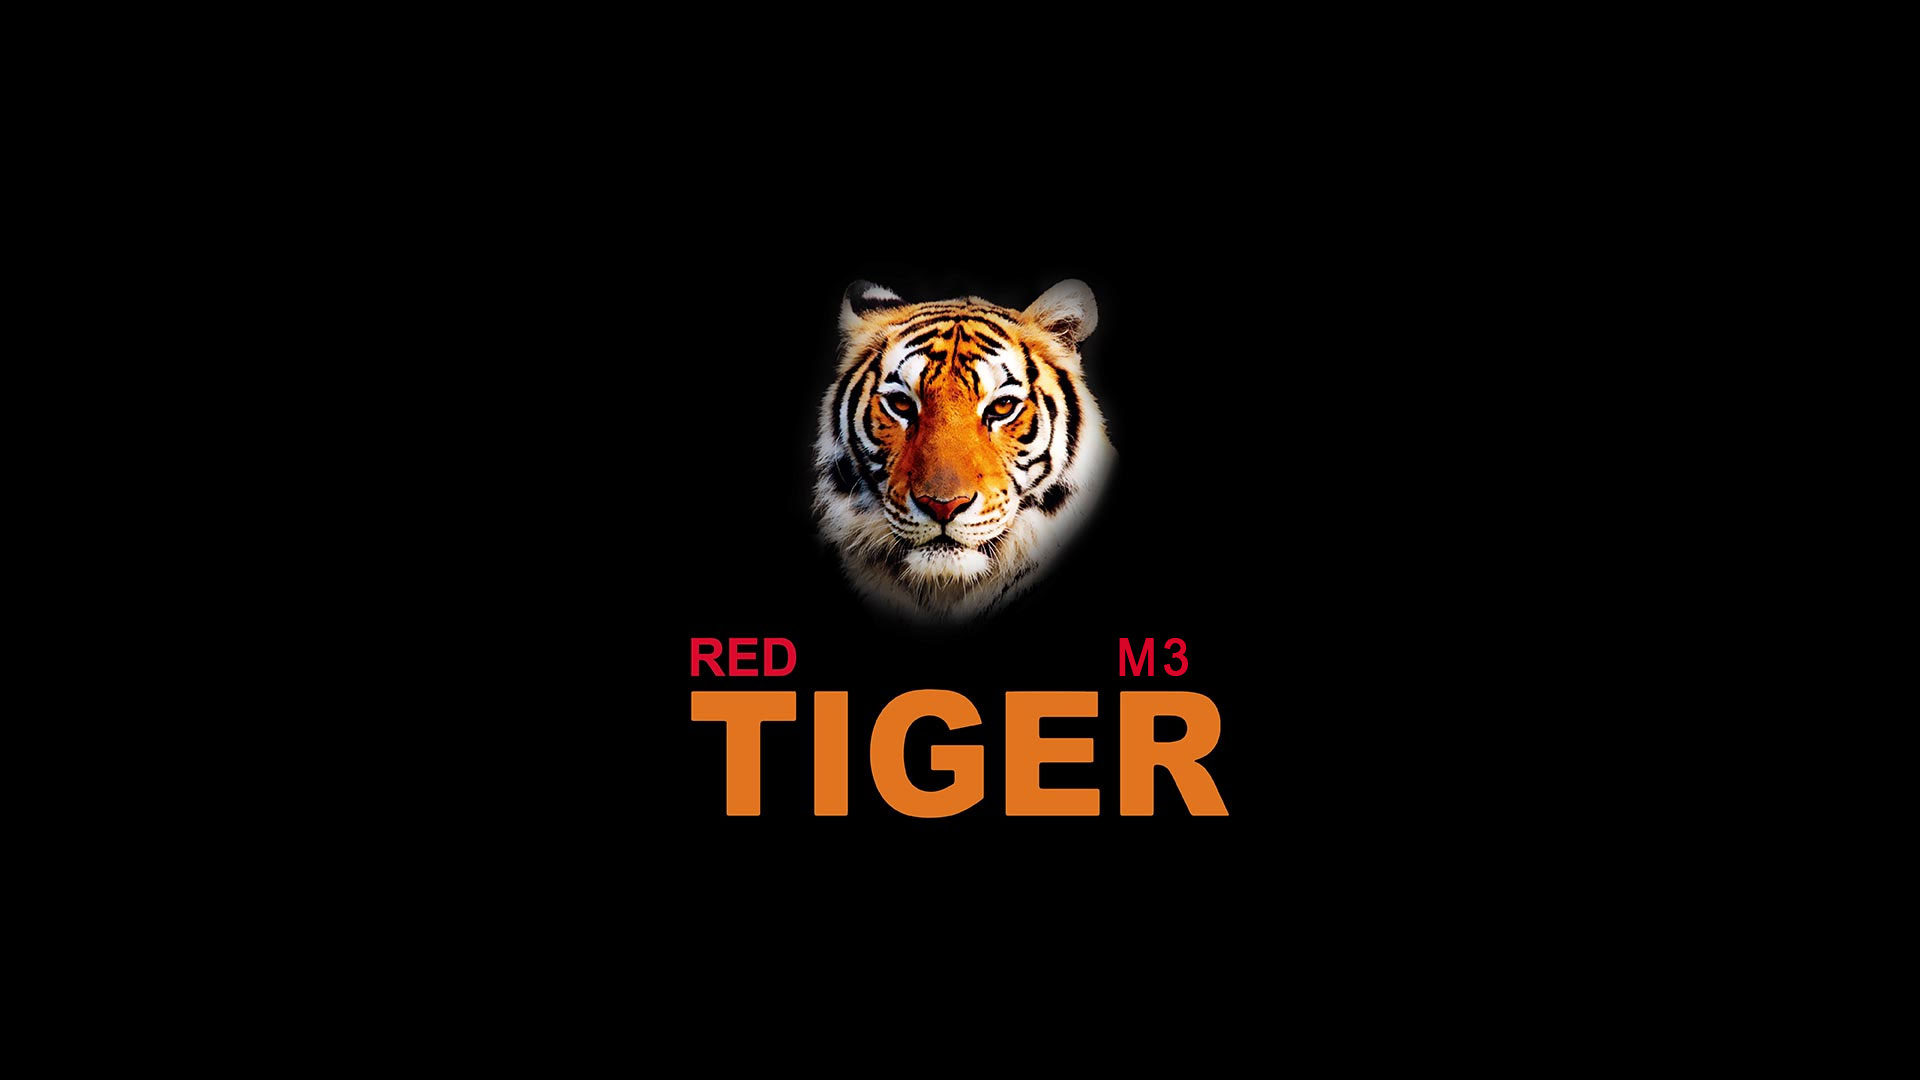 Download Software Red Tiger M3 New Update Firmware Receiver